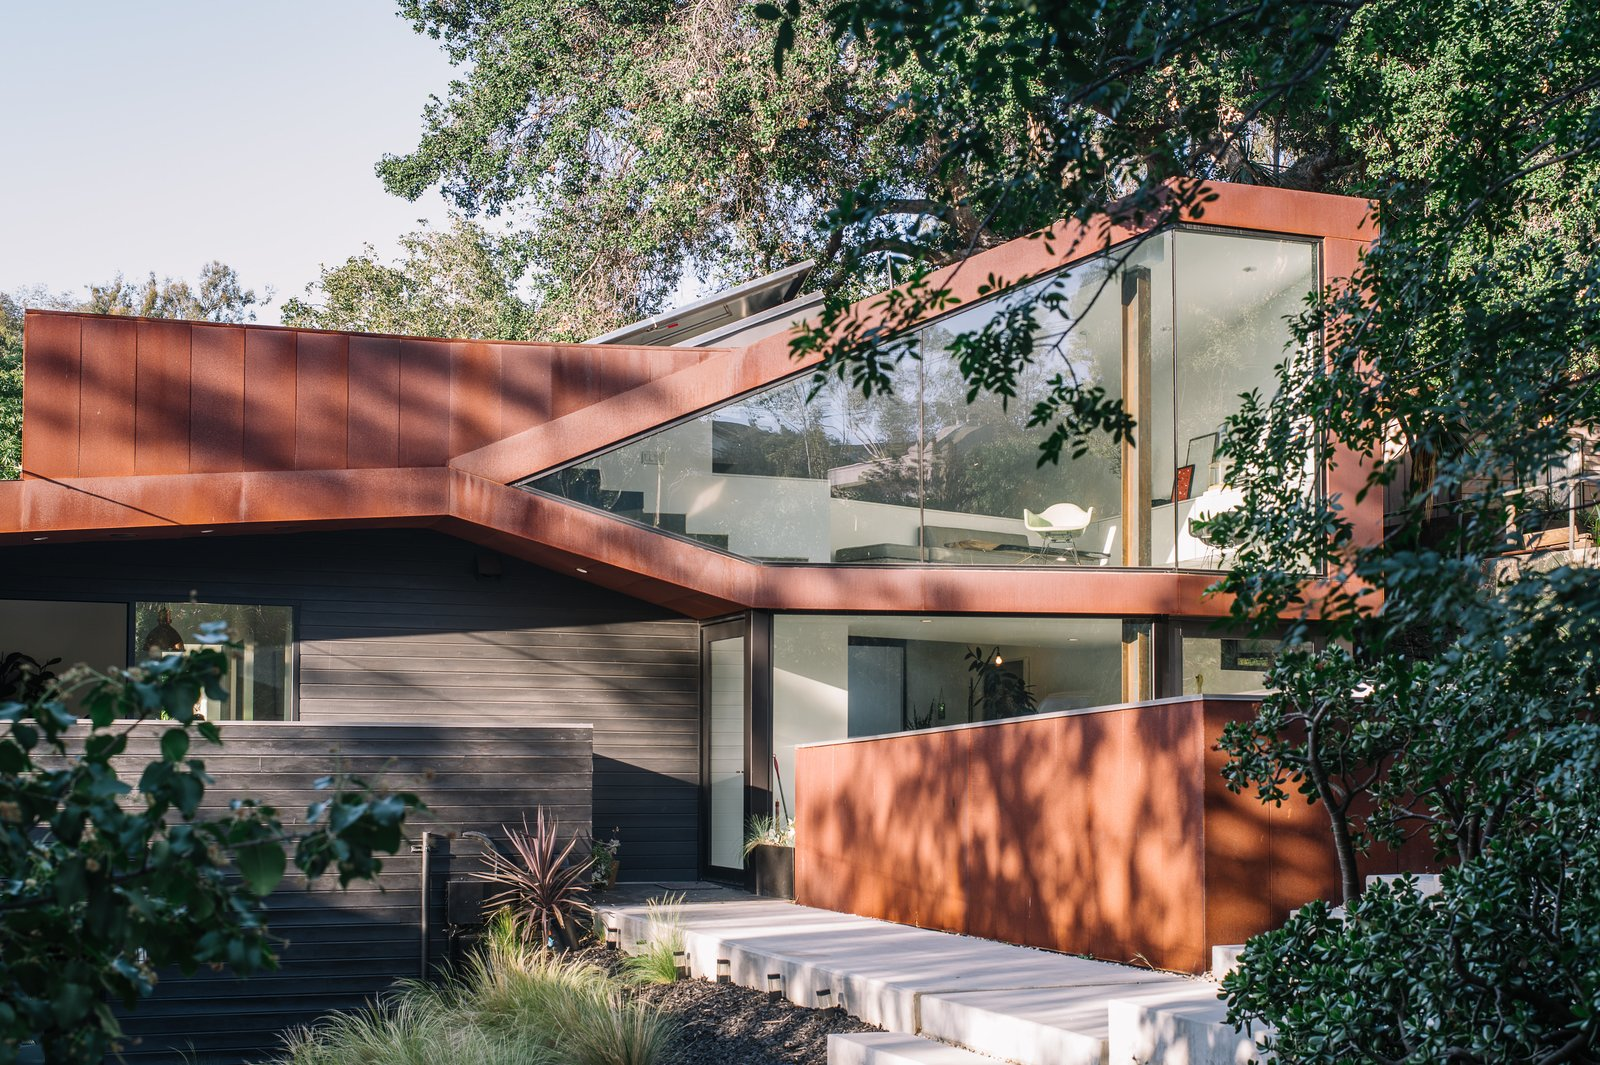 Resident Richard Kim, who works as the head of design at electric car company Faraday Future, tested his know-how with the creation of his own Los Angeles home, a curvilinear structure clad in Cor-Ten steel and black-stained cedar. Tagged: Exterior, House, Metal Siding Material, Wood Siding Material, Glass Siding Material, and Metal Roof Material.  Photo 1 of 10 in This Los Angeles Home is Driven by Automotive Design